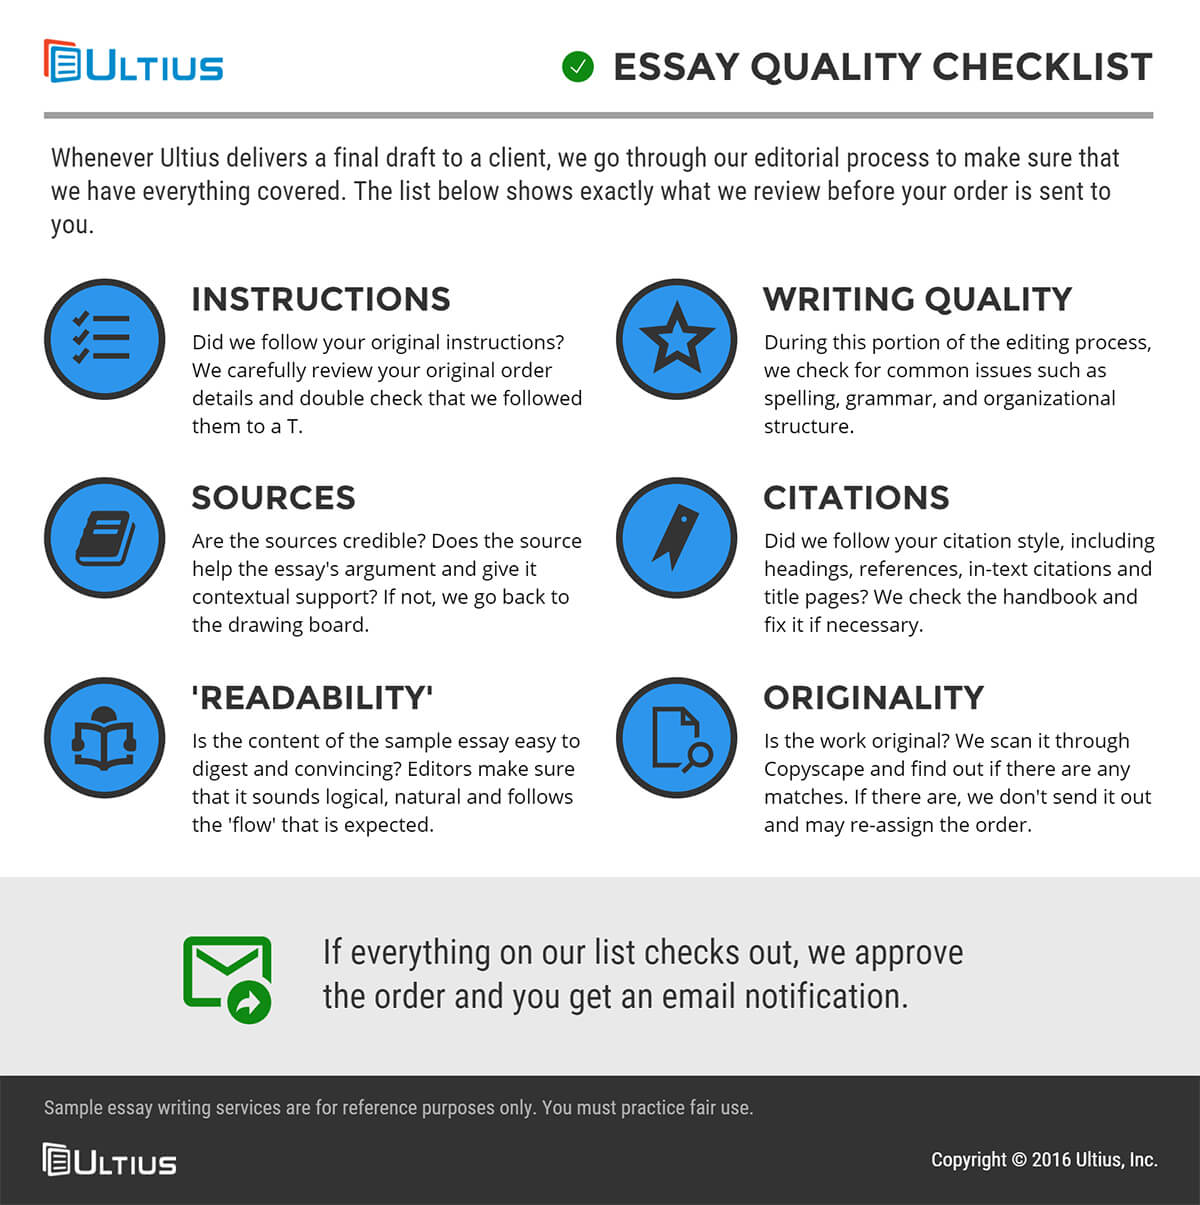 Argument Essay Thesis Purchased Essay Quality Checklist Essay With Thesis Statement Example also Apa Format For Essay Paper Buy Essay Online   Original  American Writers  Ultius Essays With Thesis Statements